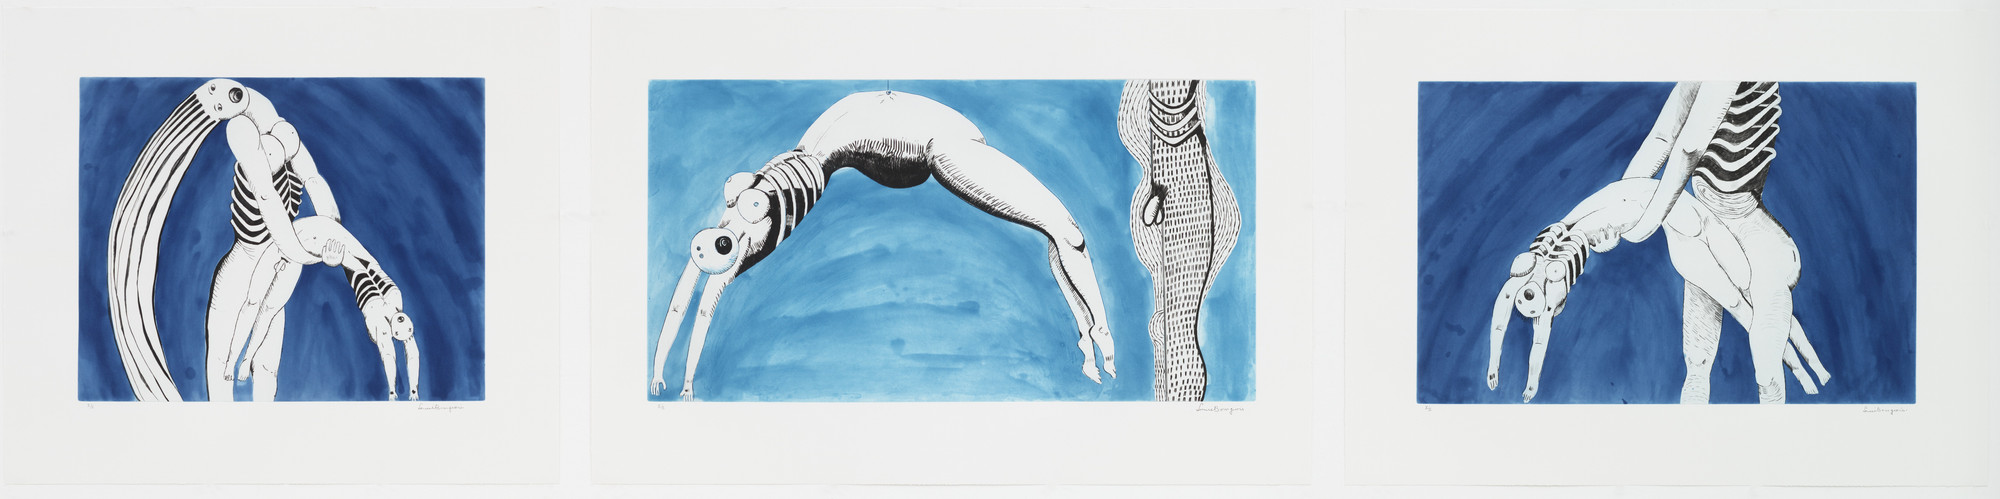 Louise Bourgeois. Triptych for the Red Room. 1994